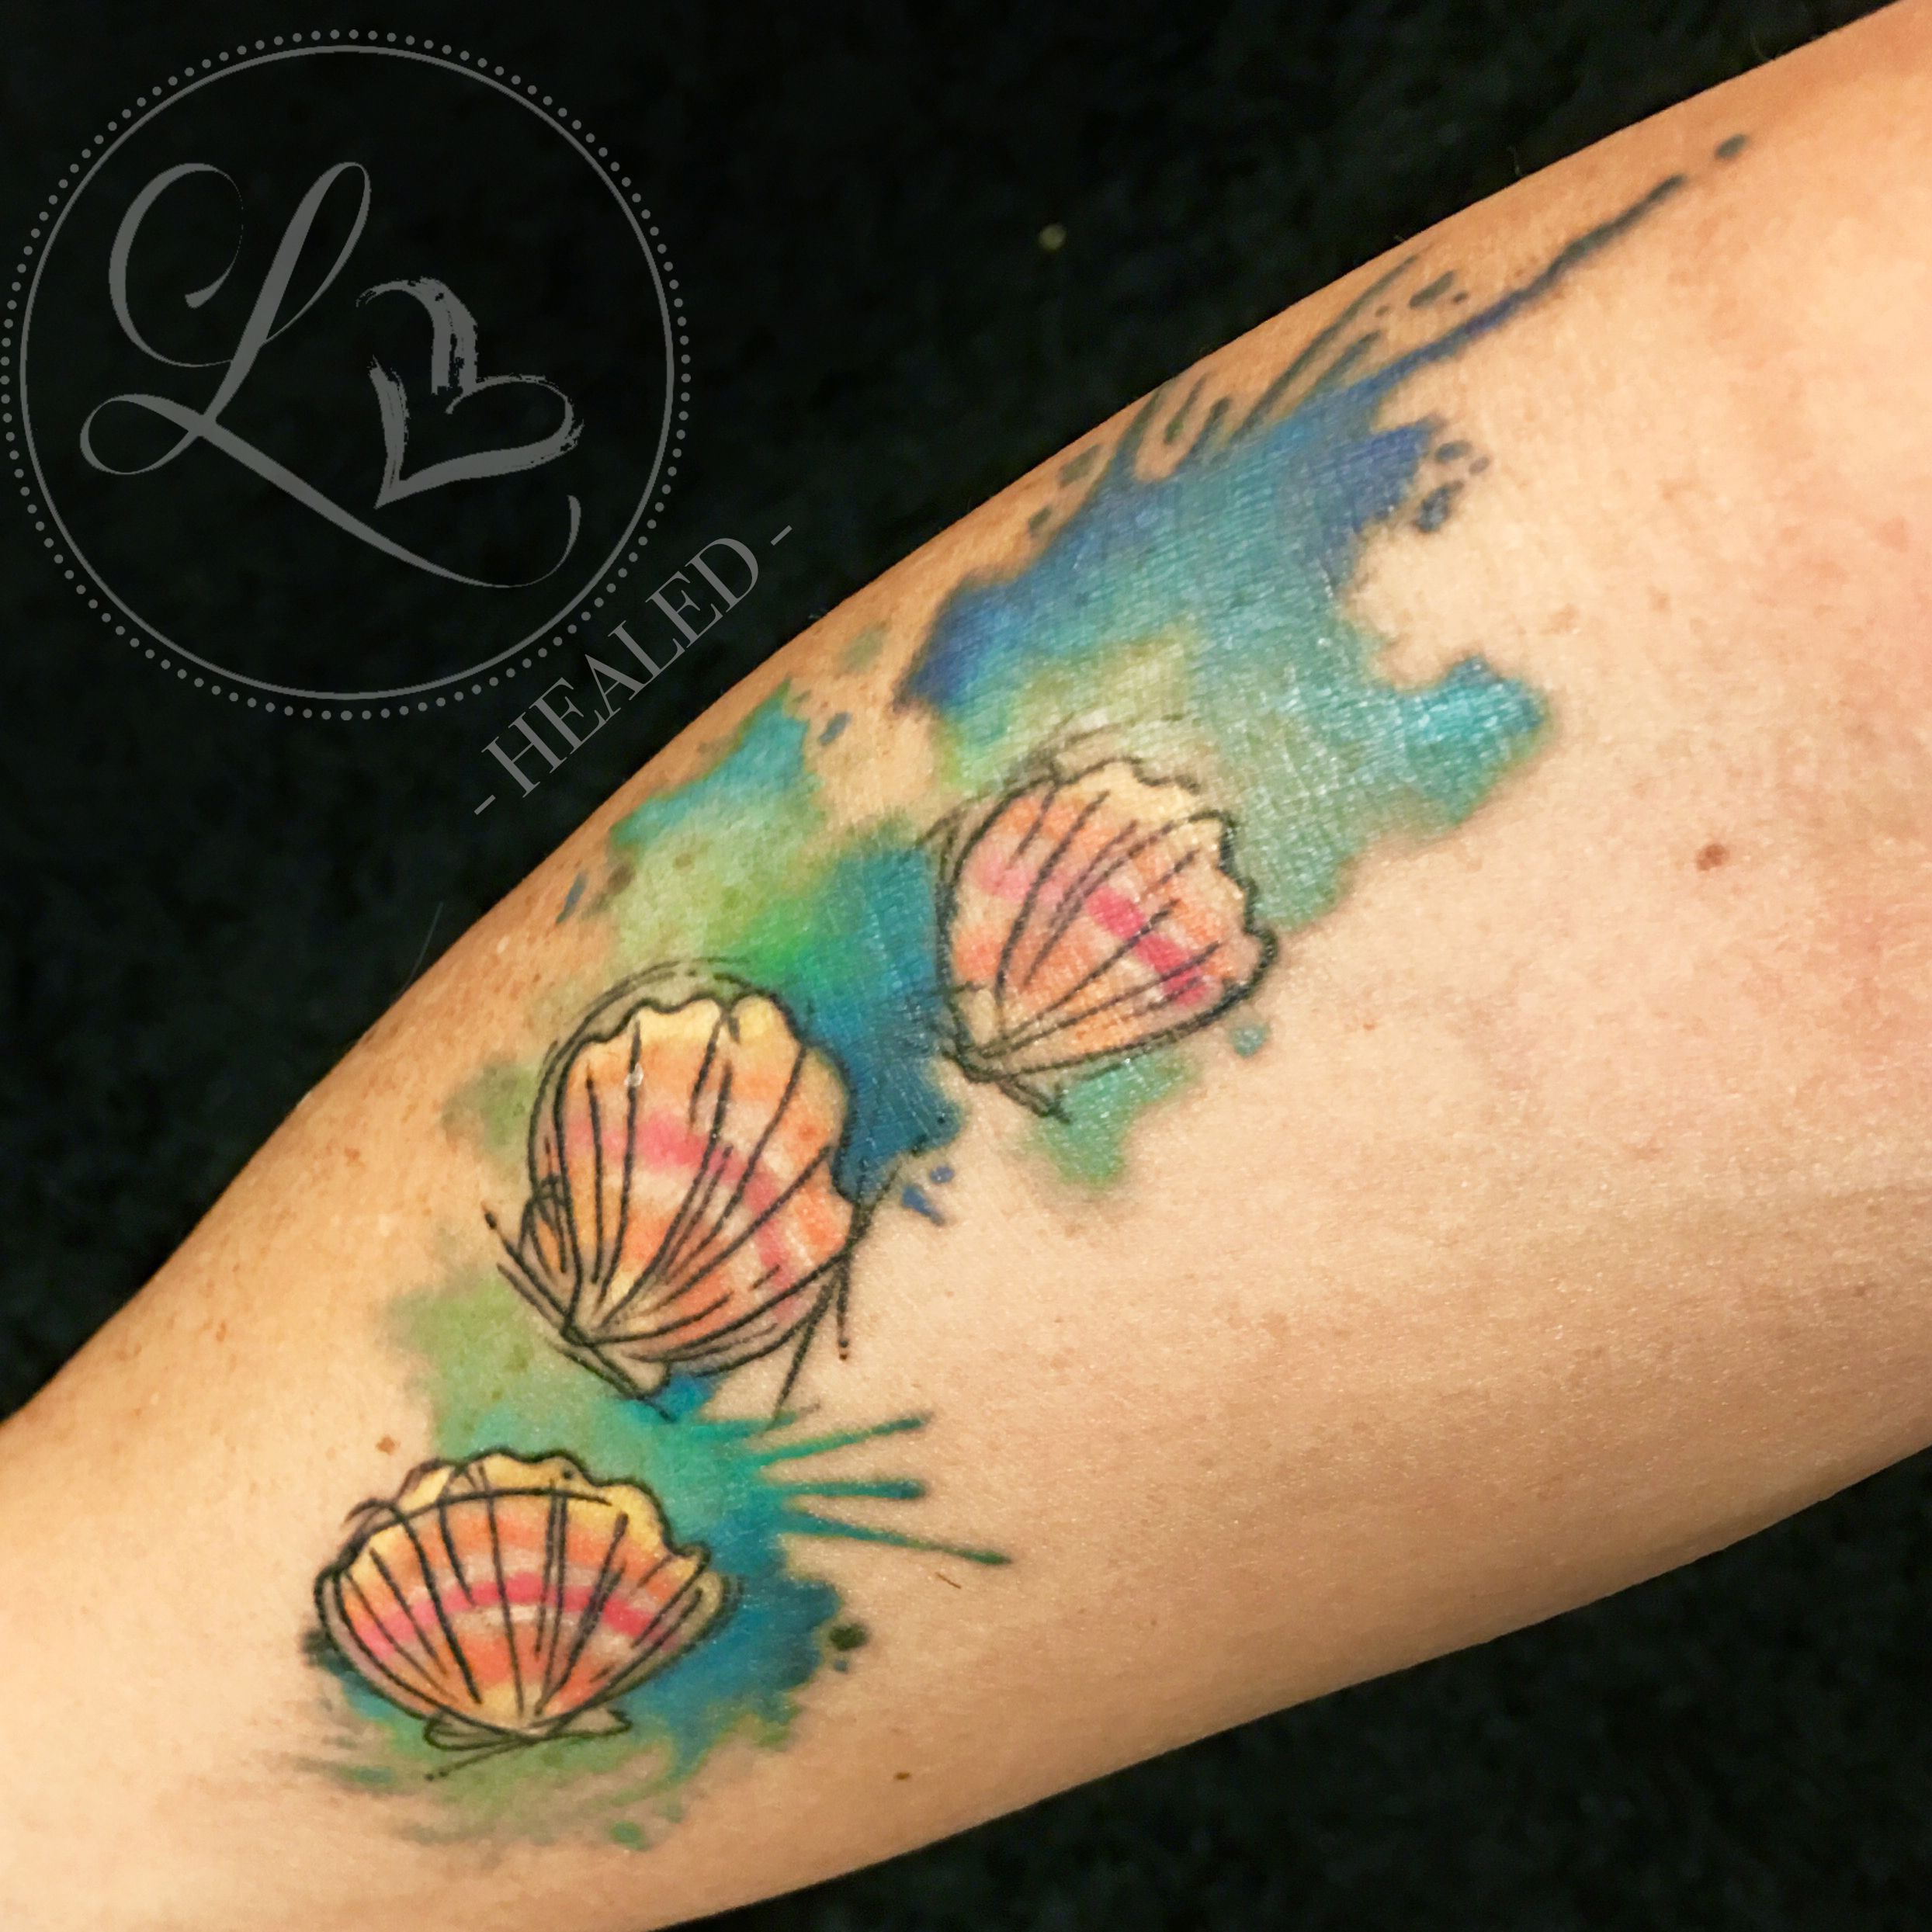 Healed tattoo of sunrise shells in watercolor style